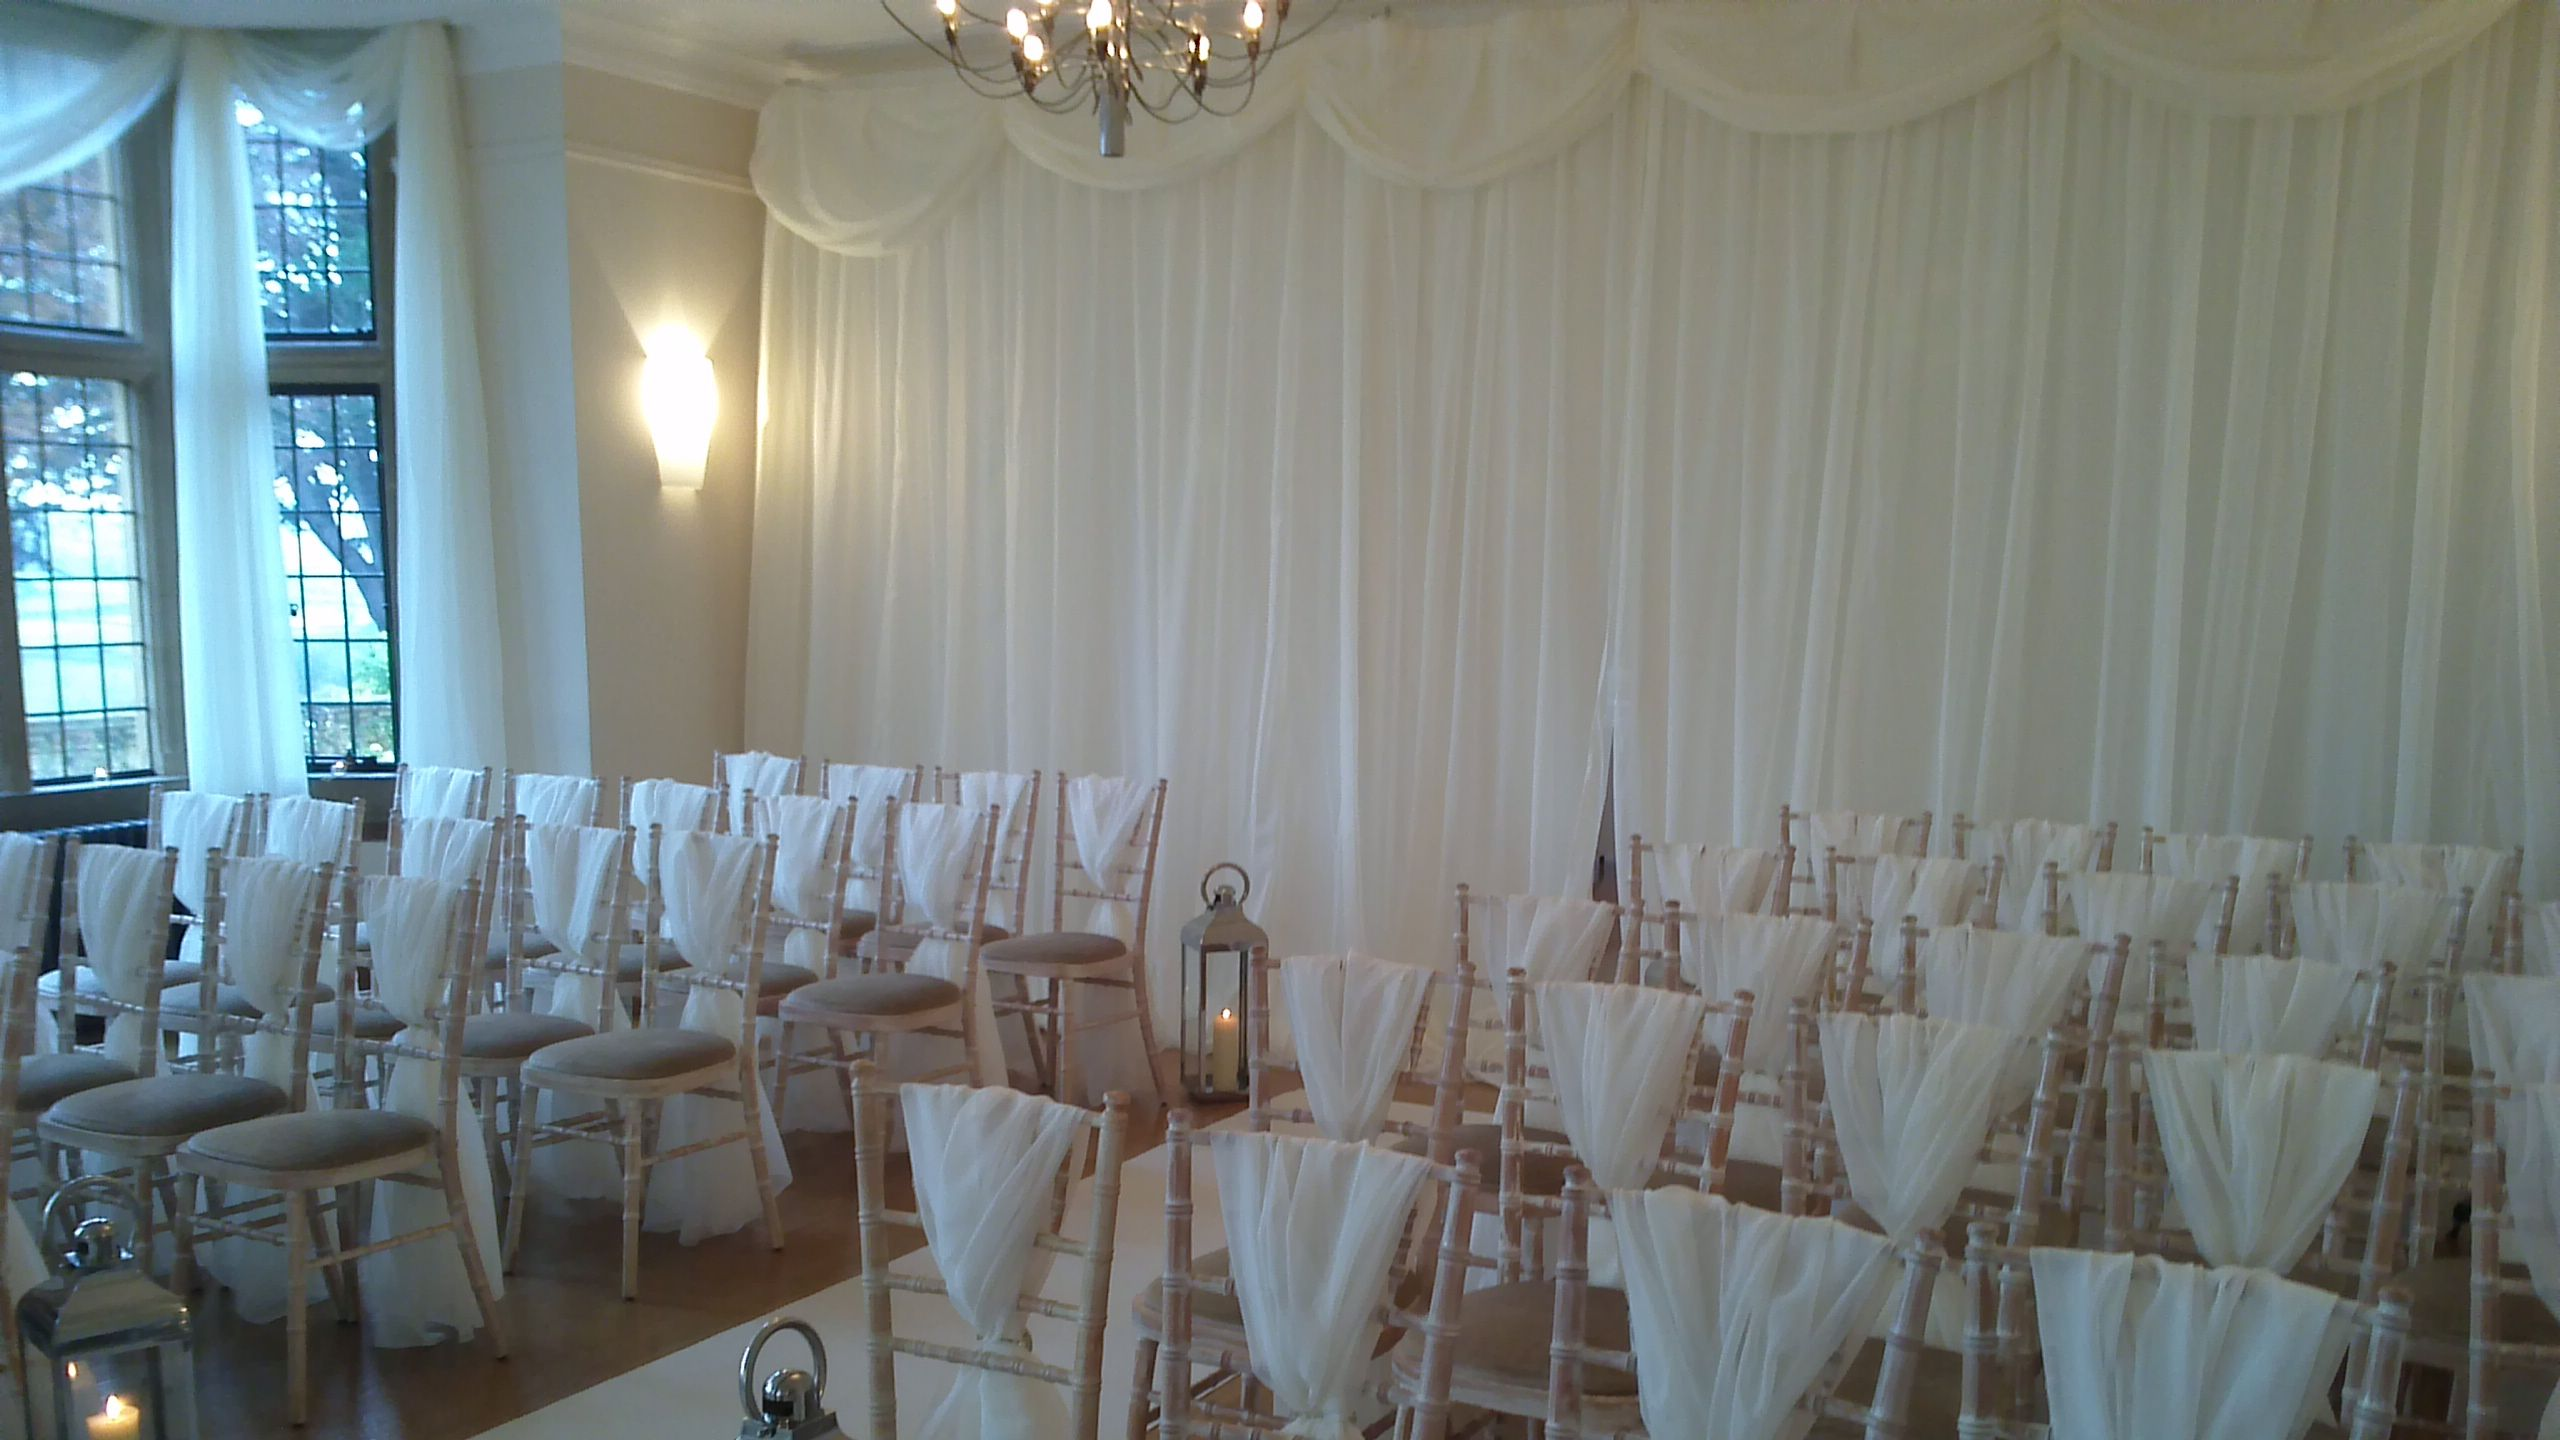 Window and room divider drapes plus elegant chair covers from